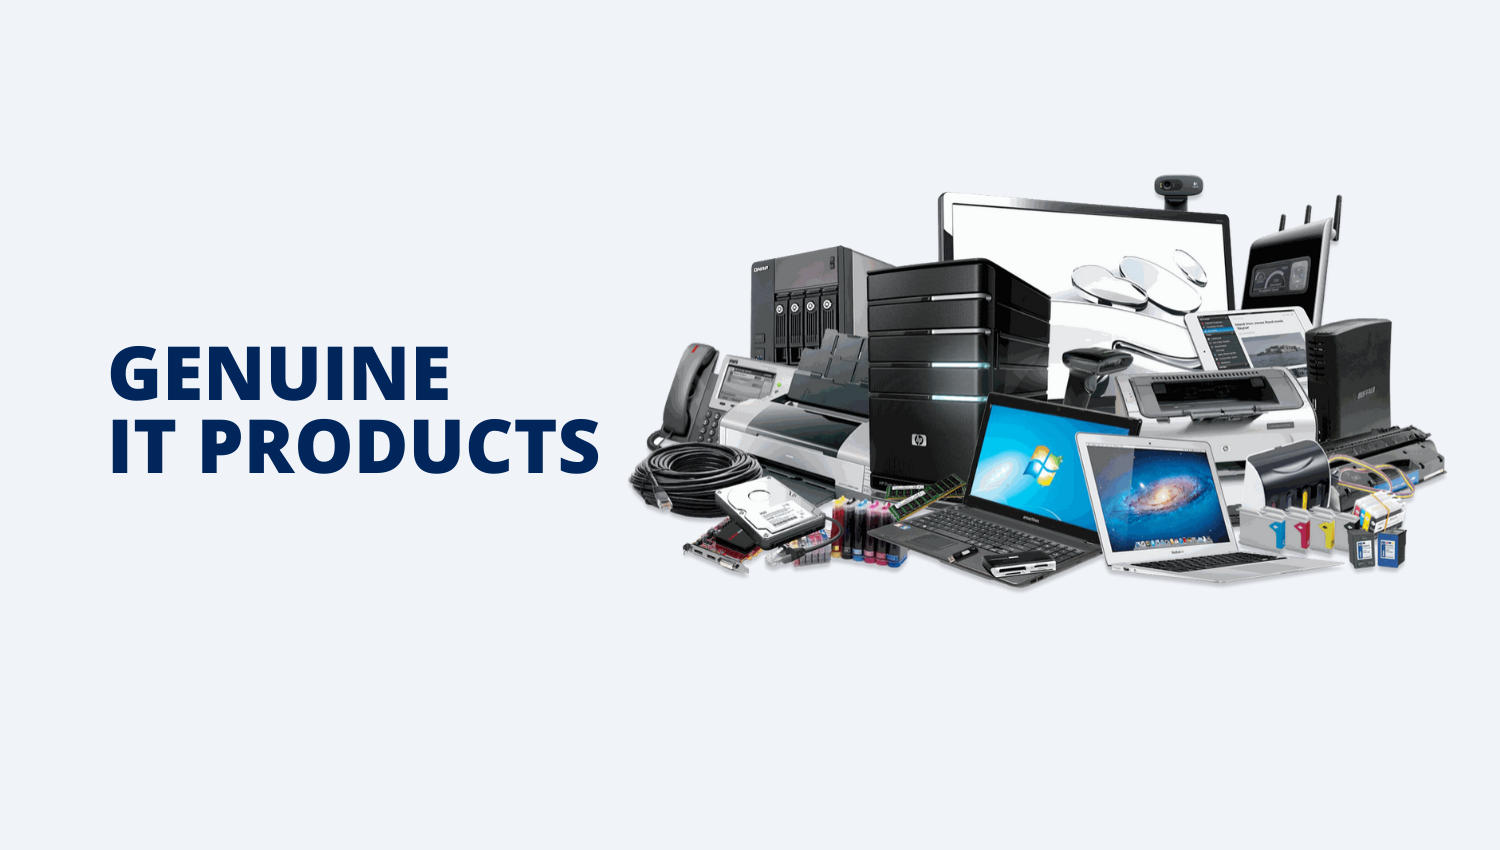 Genuine-IT-Products-Tiacotech